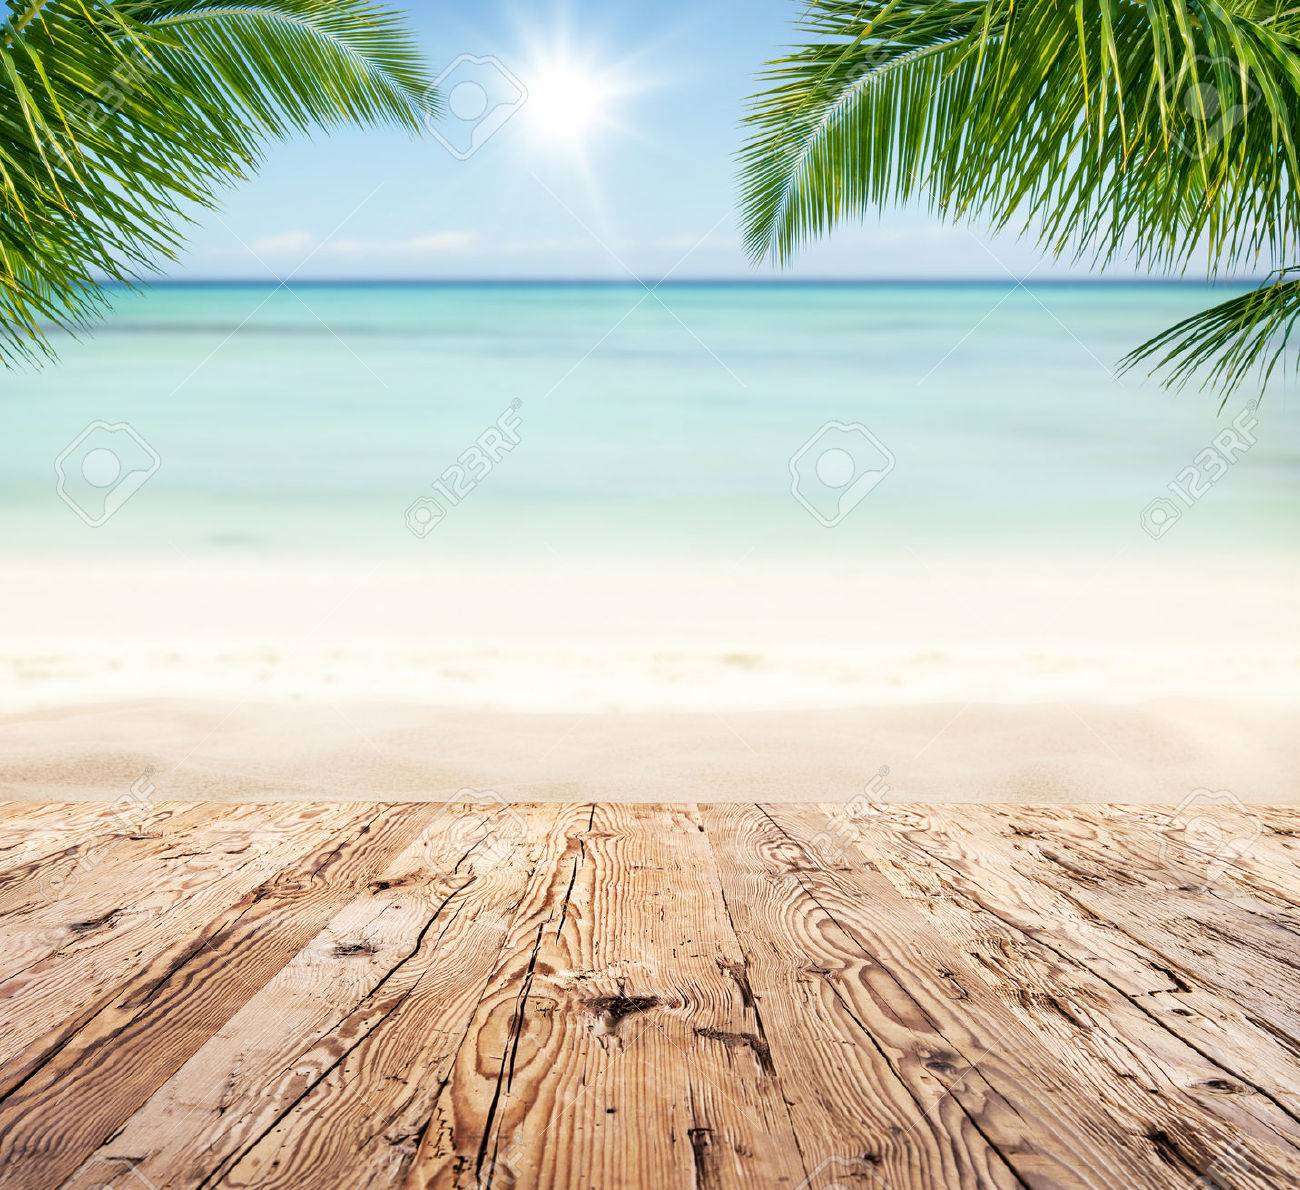 Empty wooden planks with blur beach on background, can be used for product placement, Palm leaves on foreground - 55296508